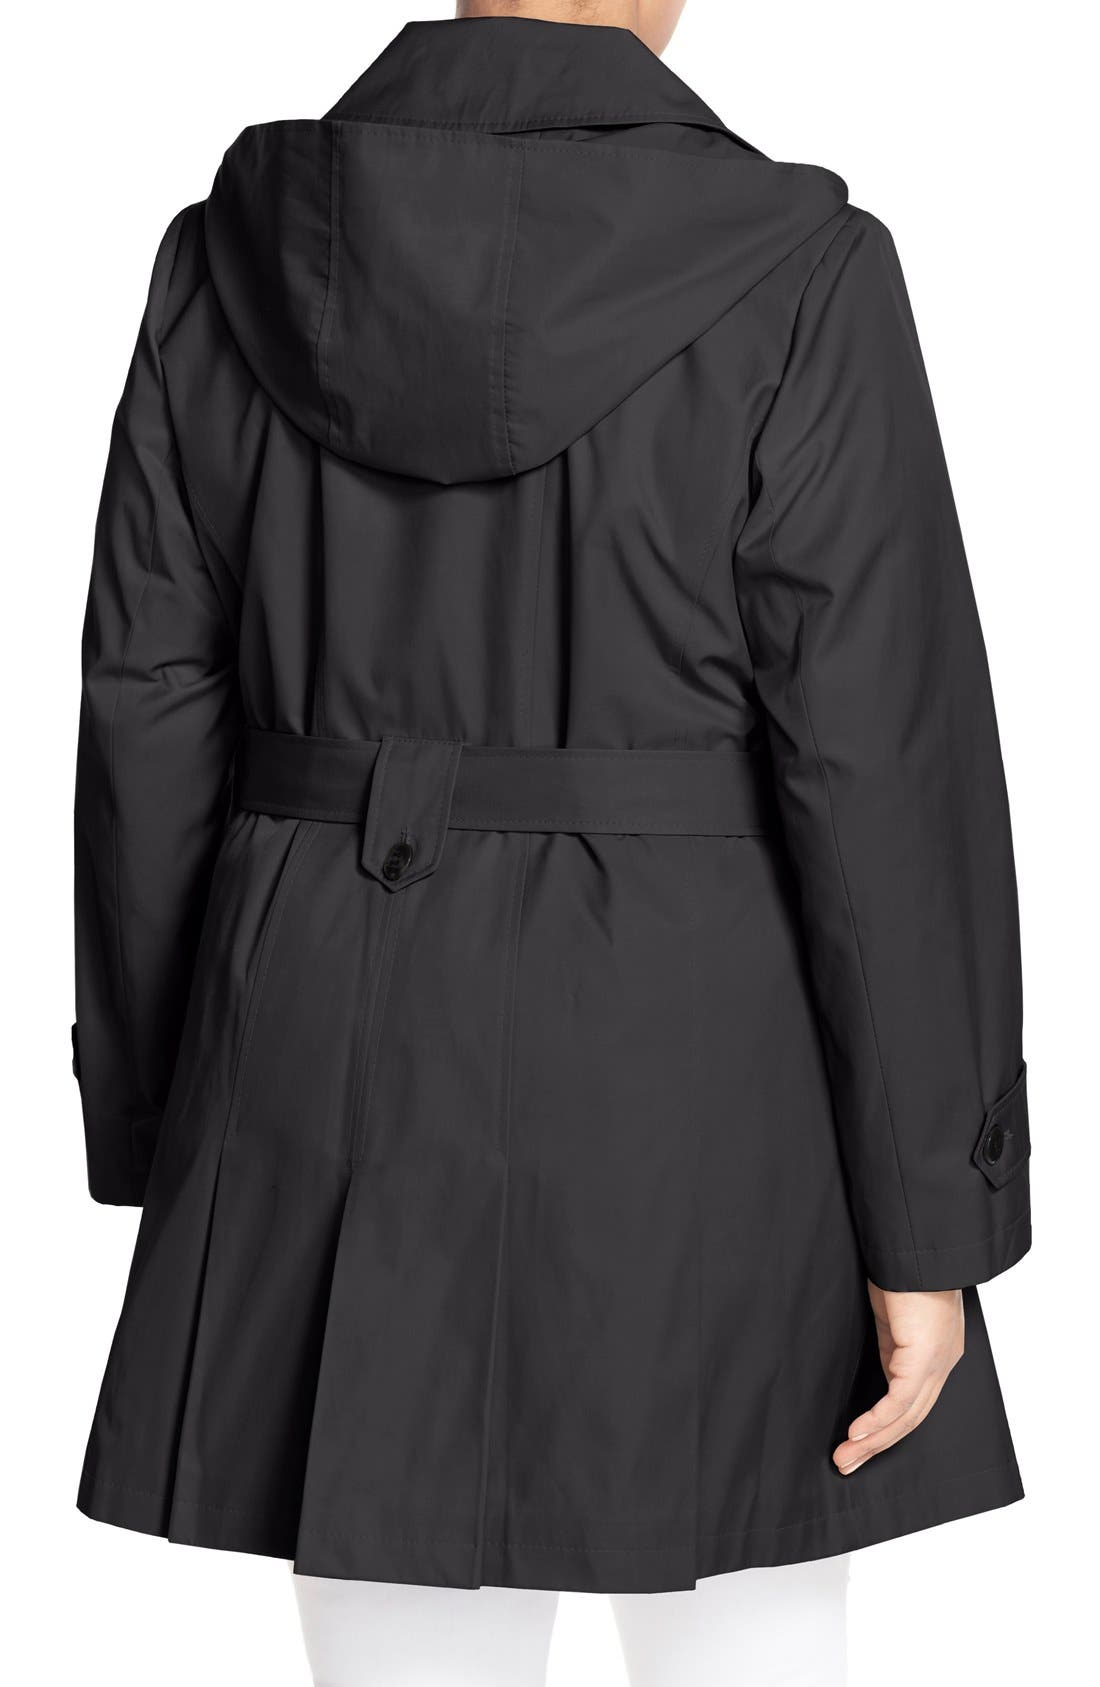 'Scarpa' Single Breasted Trench Coat,                             Alternate thumbnail 7, color,